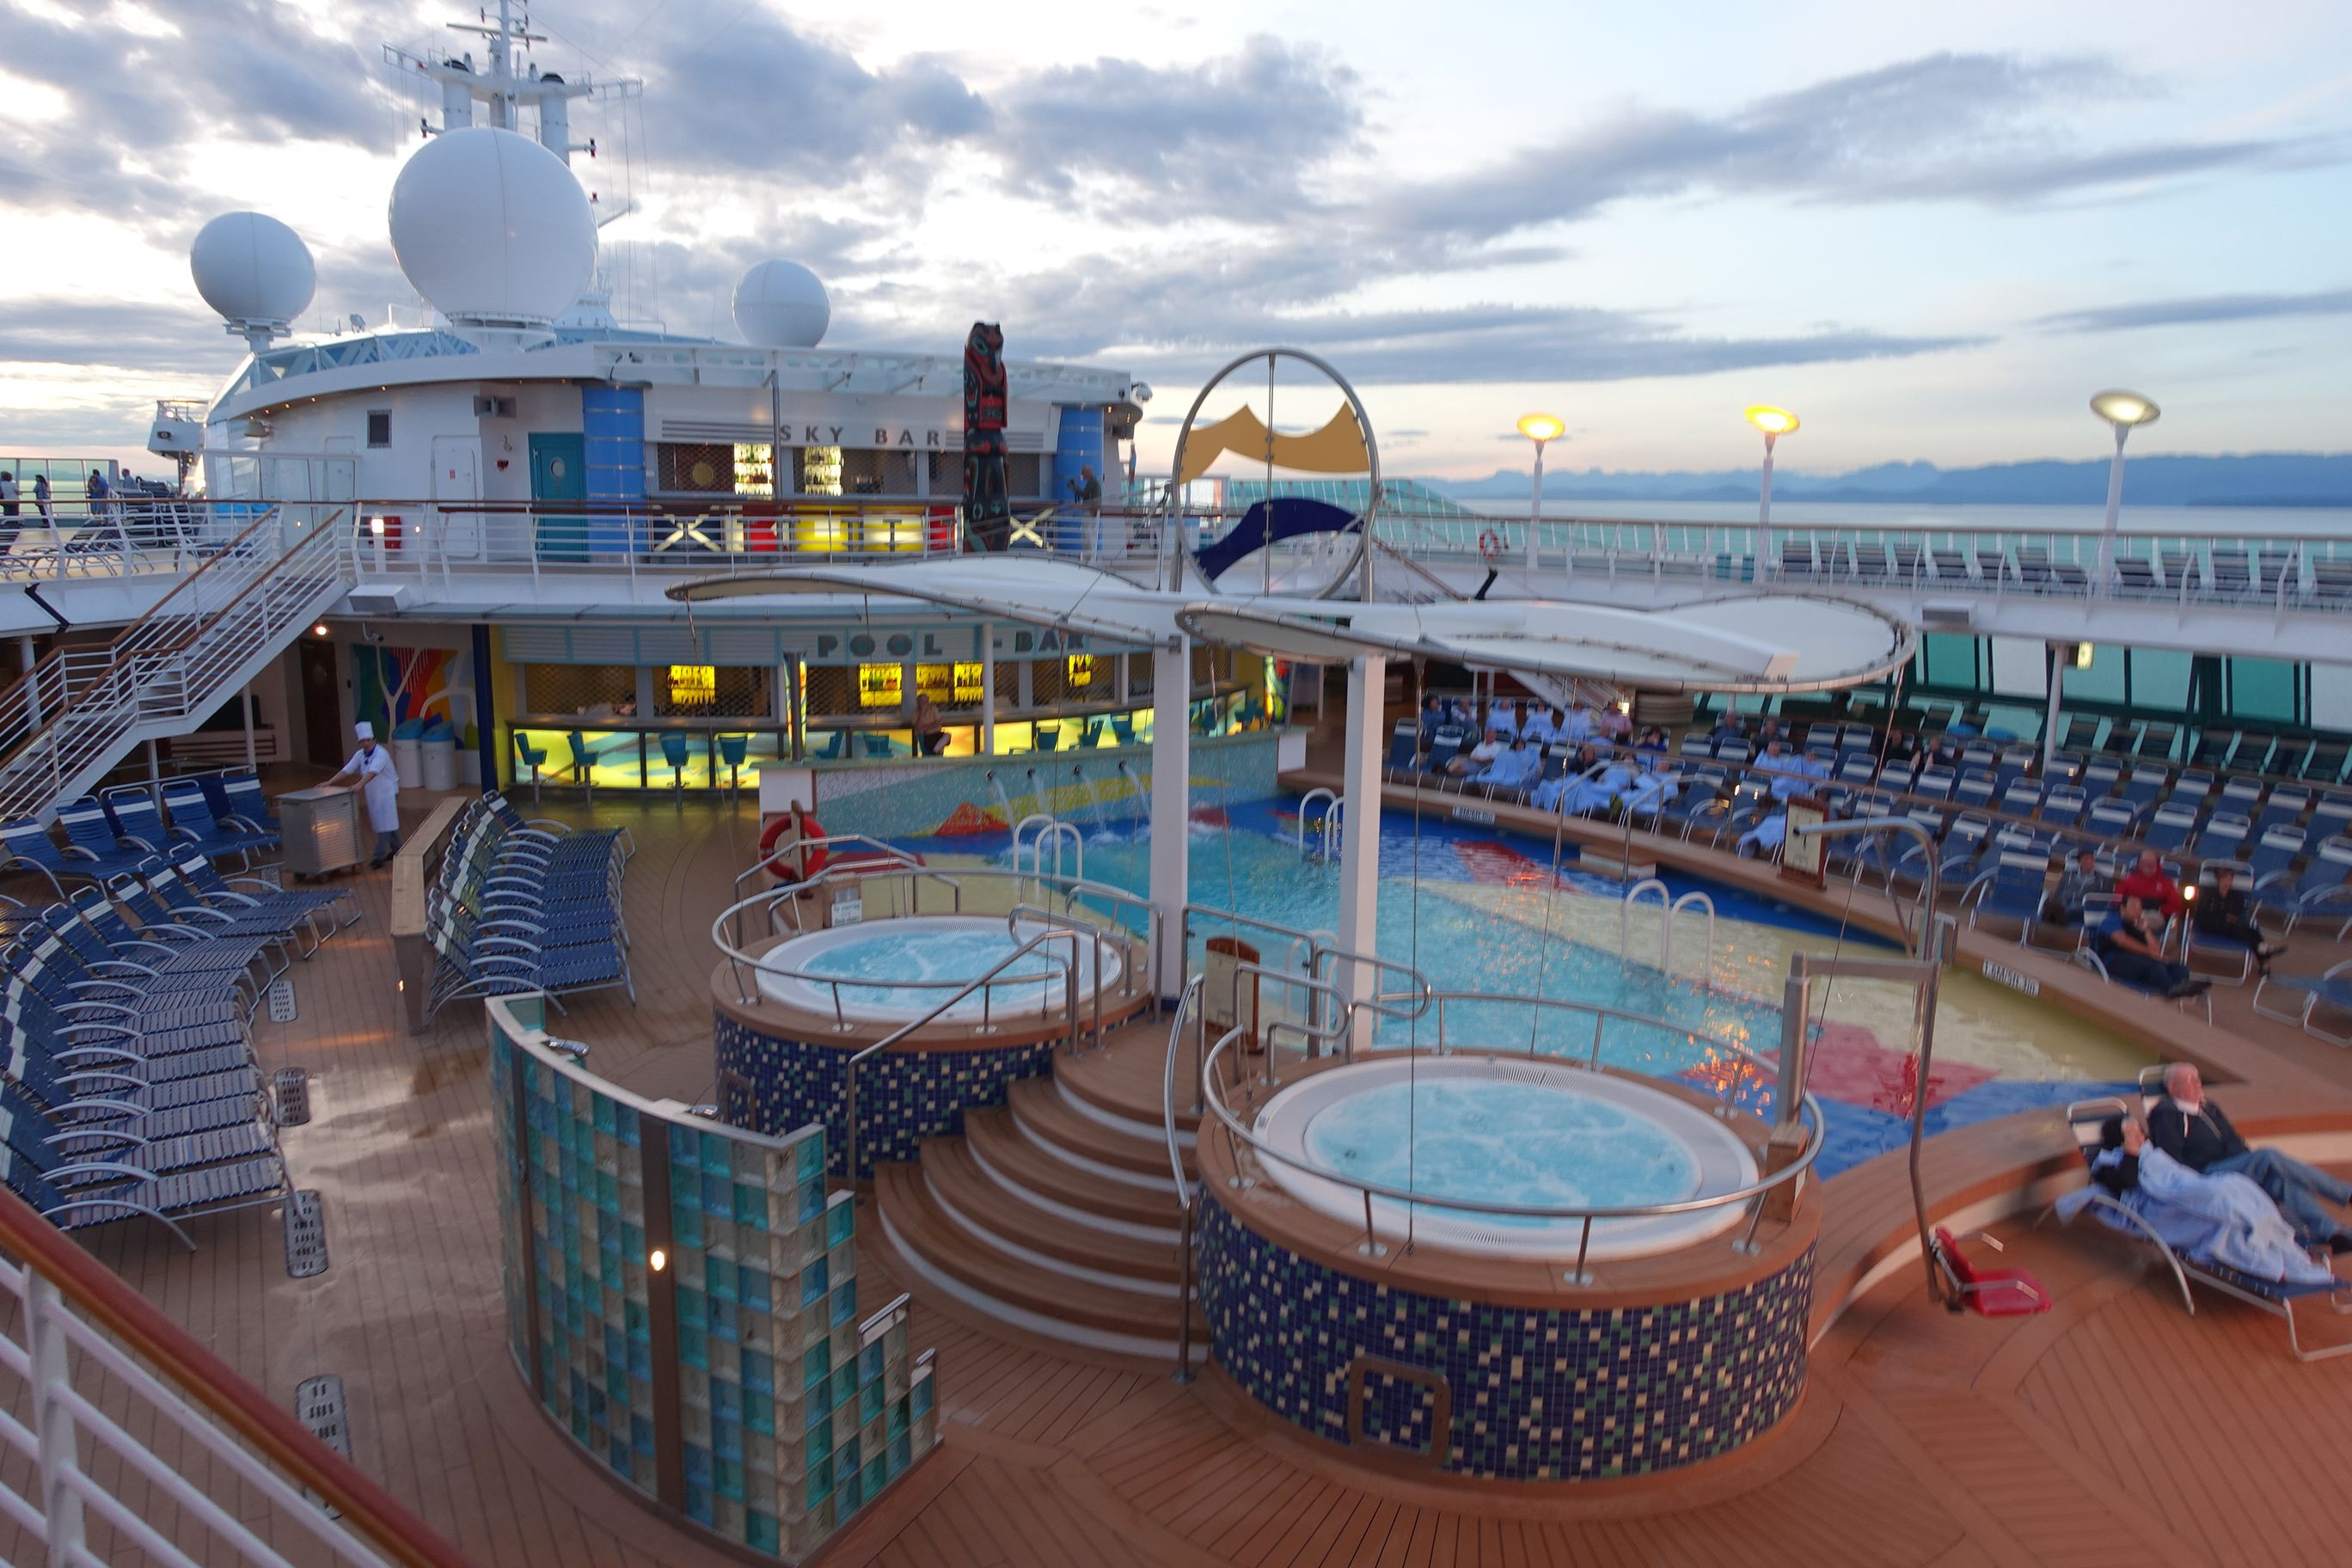 Radiance Of The Seas Royal Caribbean Pool Idea Luxury - Radiance of the seas